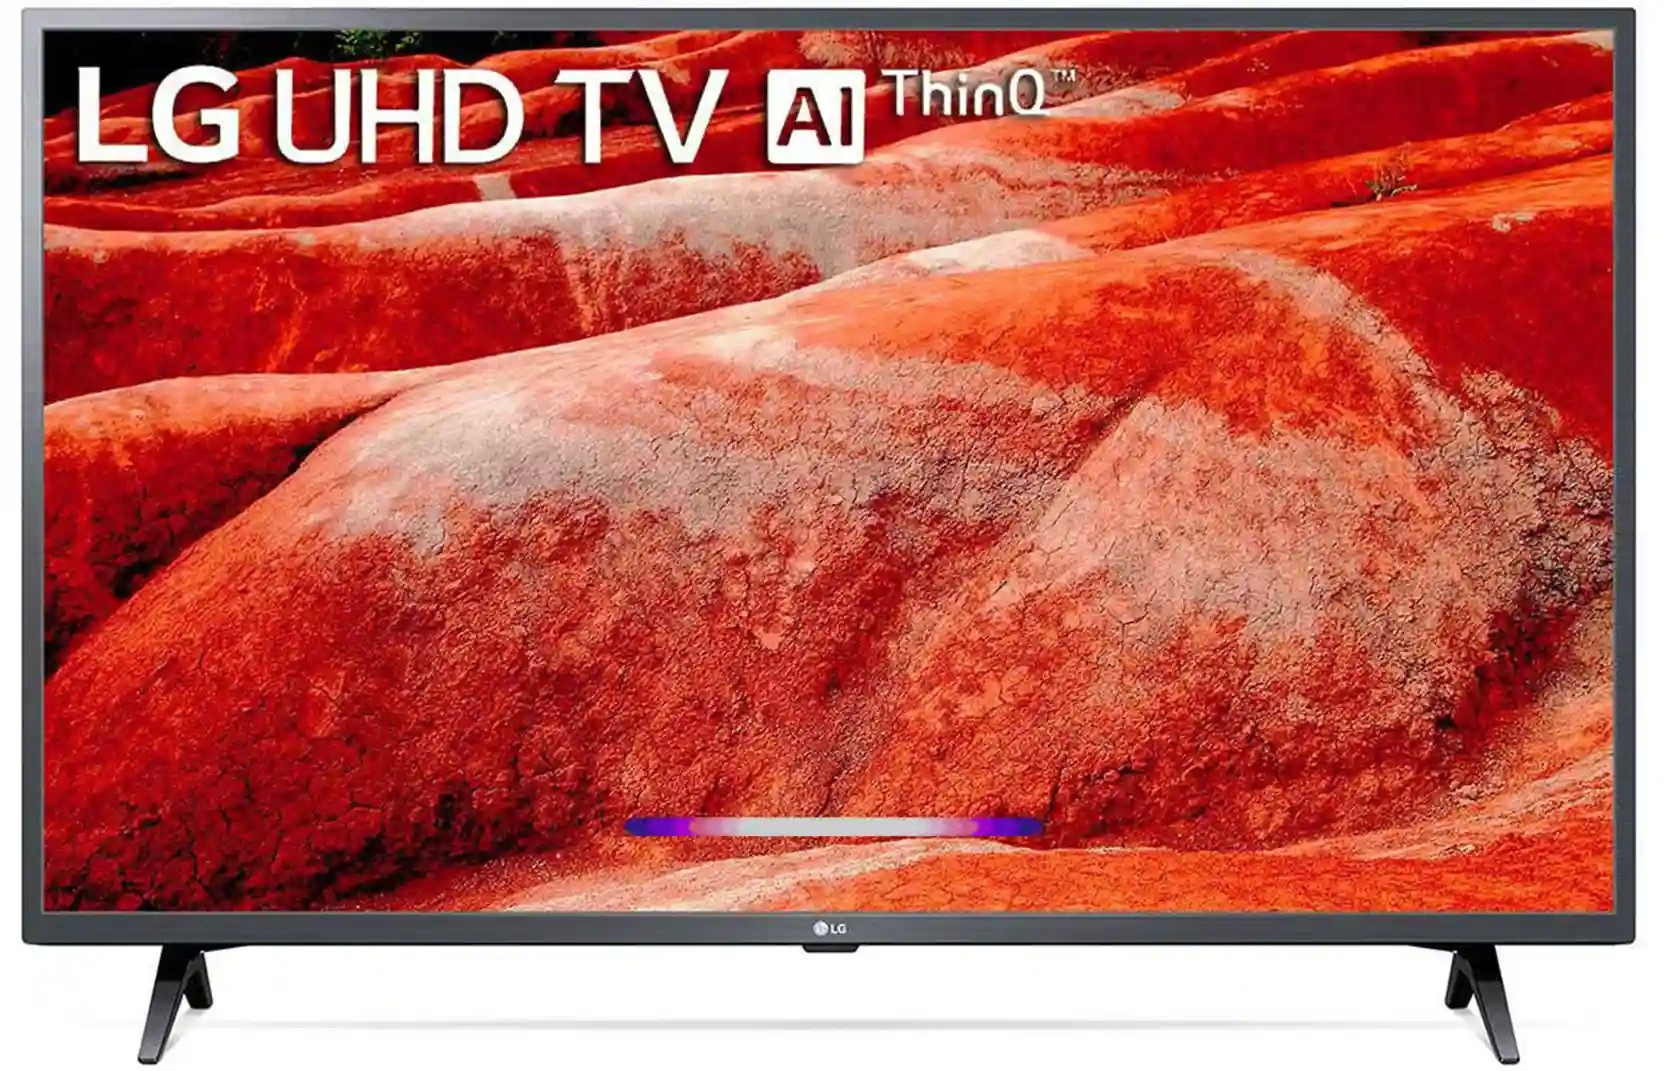 LG-50UM7700PTA-50-Inches-Ultra-HD-4K-LED-Smart-TV-front_ios